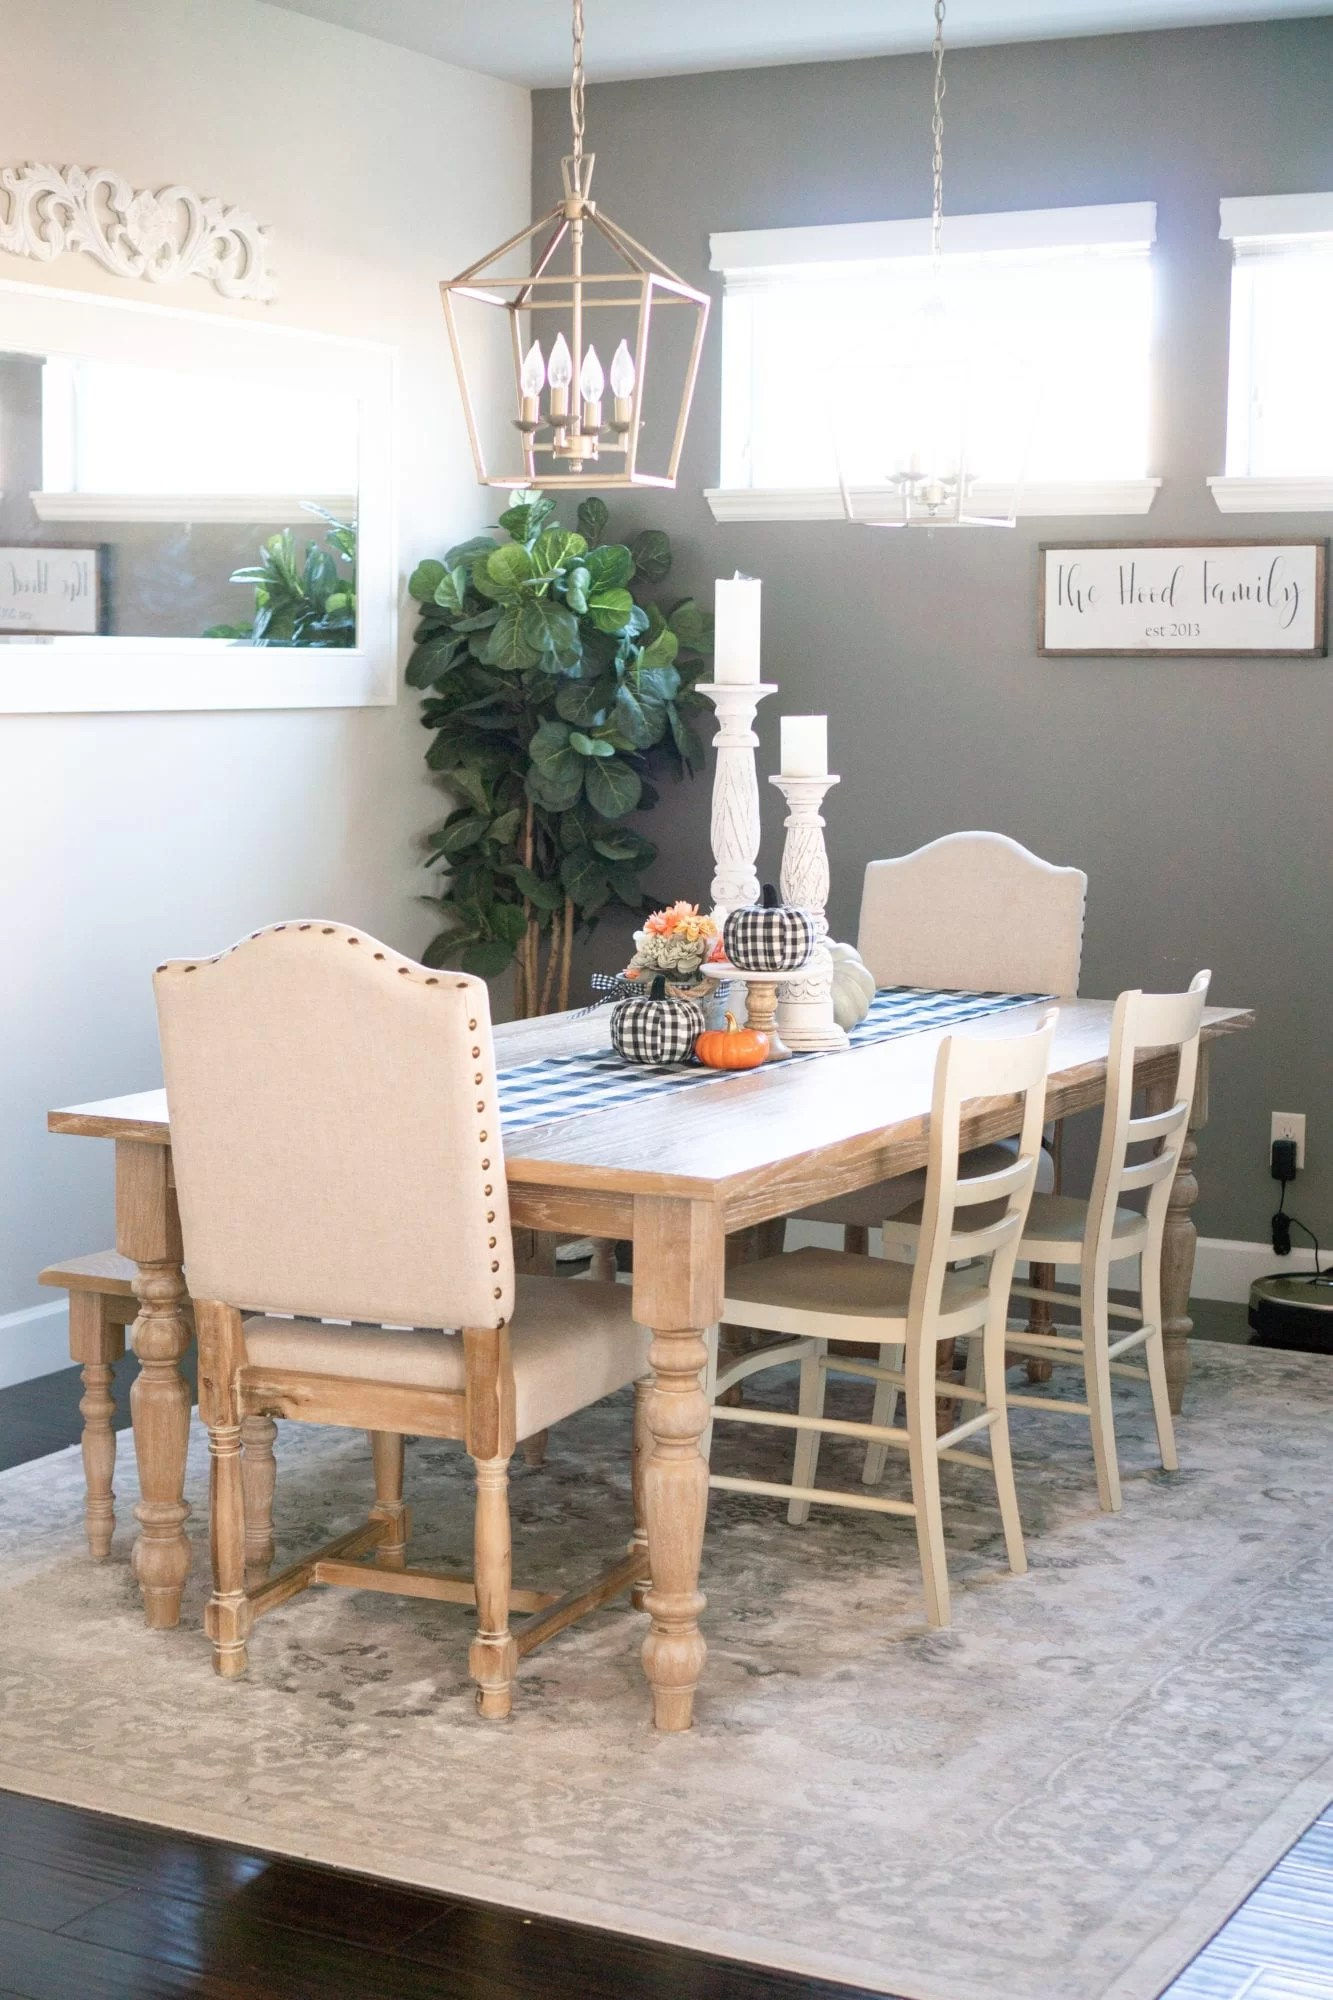 Our Fall Home Decor Tour! Simple Fall Home Decor Updates With Touches Of  Buffalo Plaid